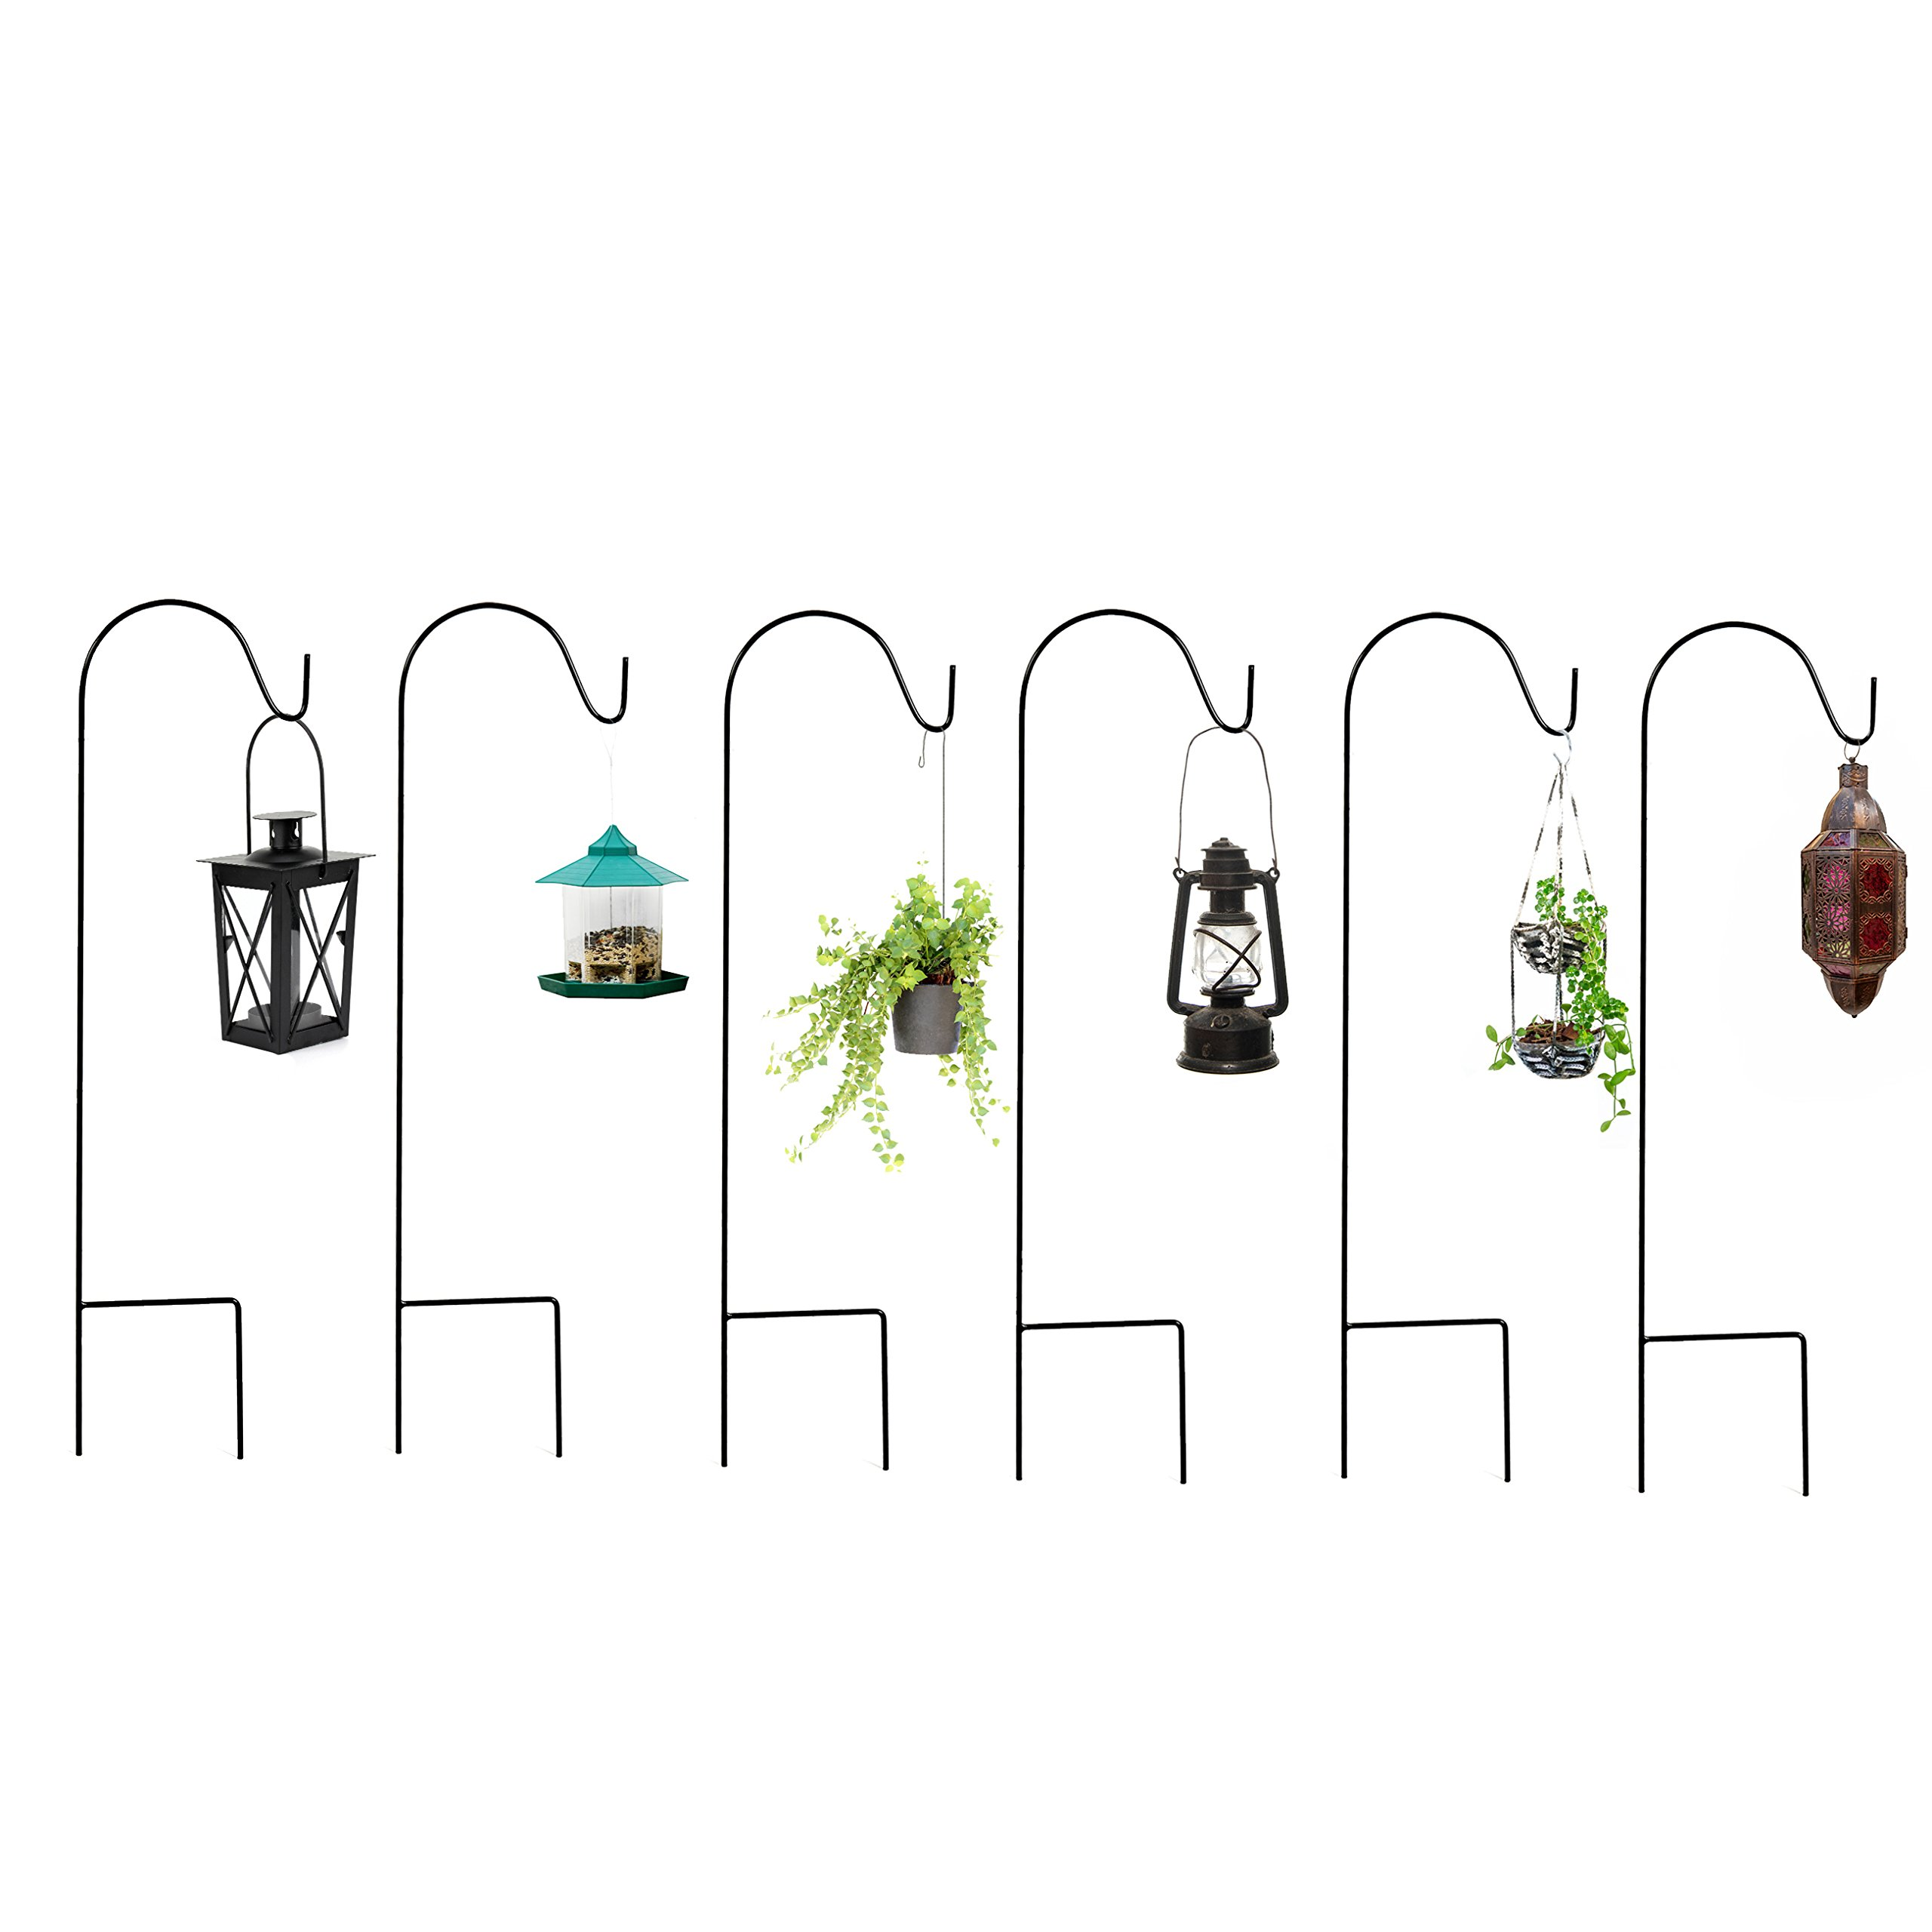 Best Choice Products 35'' Set of 8 Shepherd's Hooks Stakes for Garden Decor, Bird Feeders, Lights, Planters